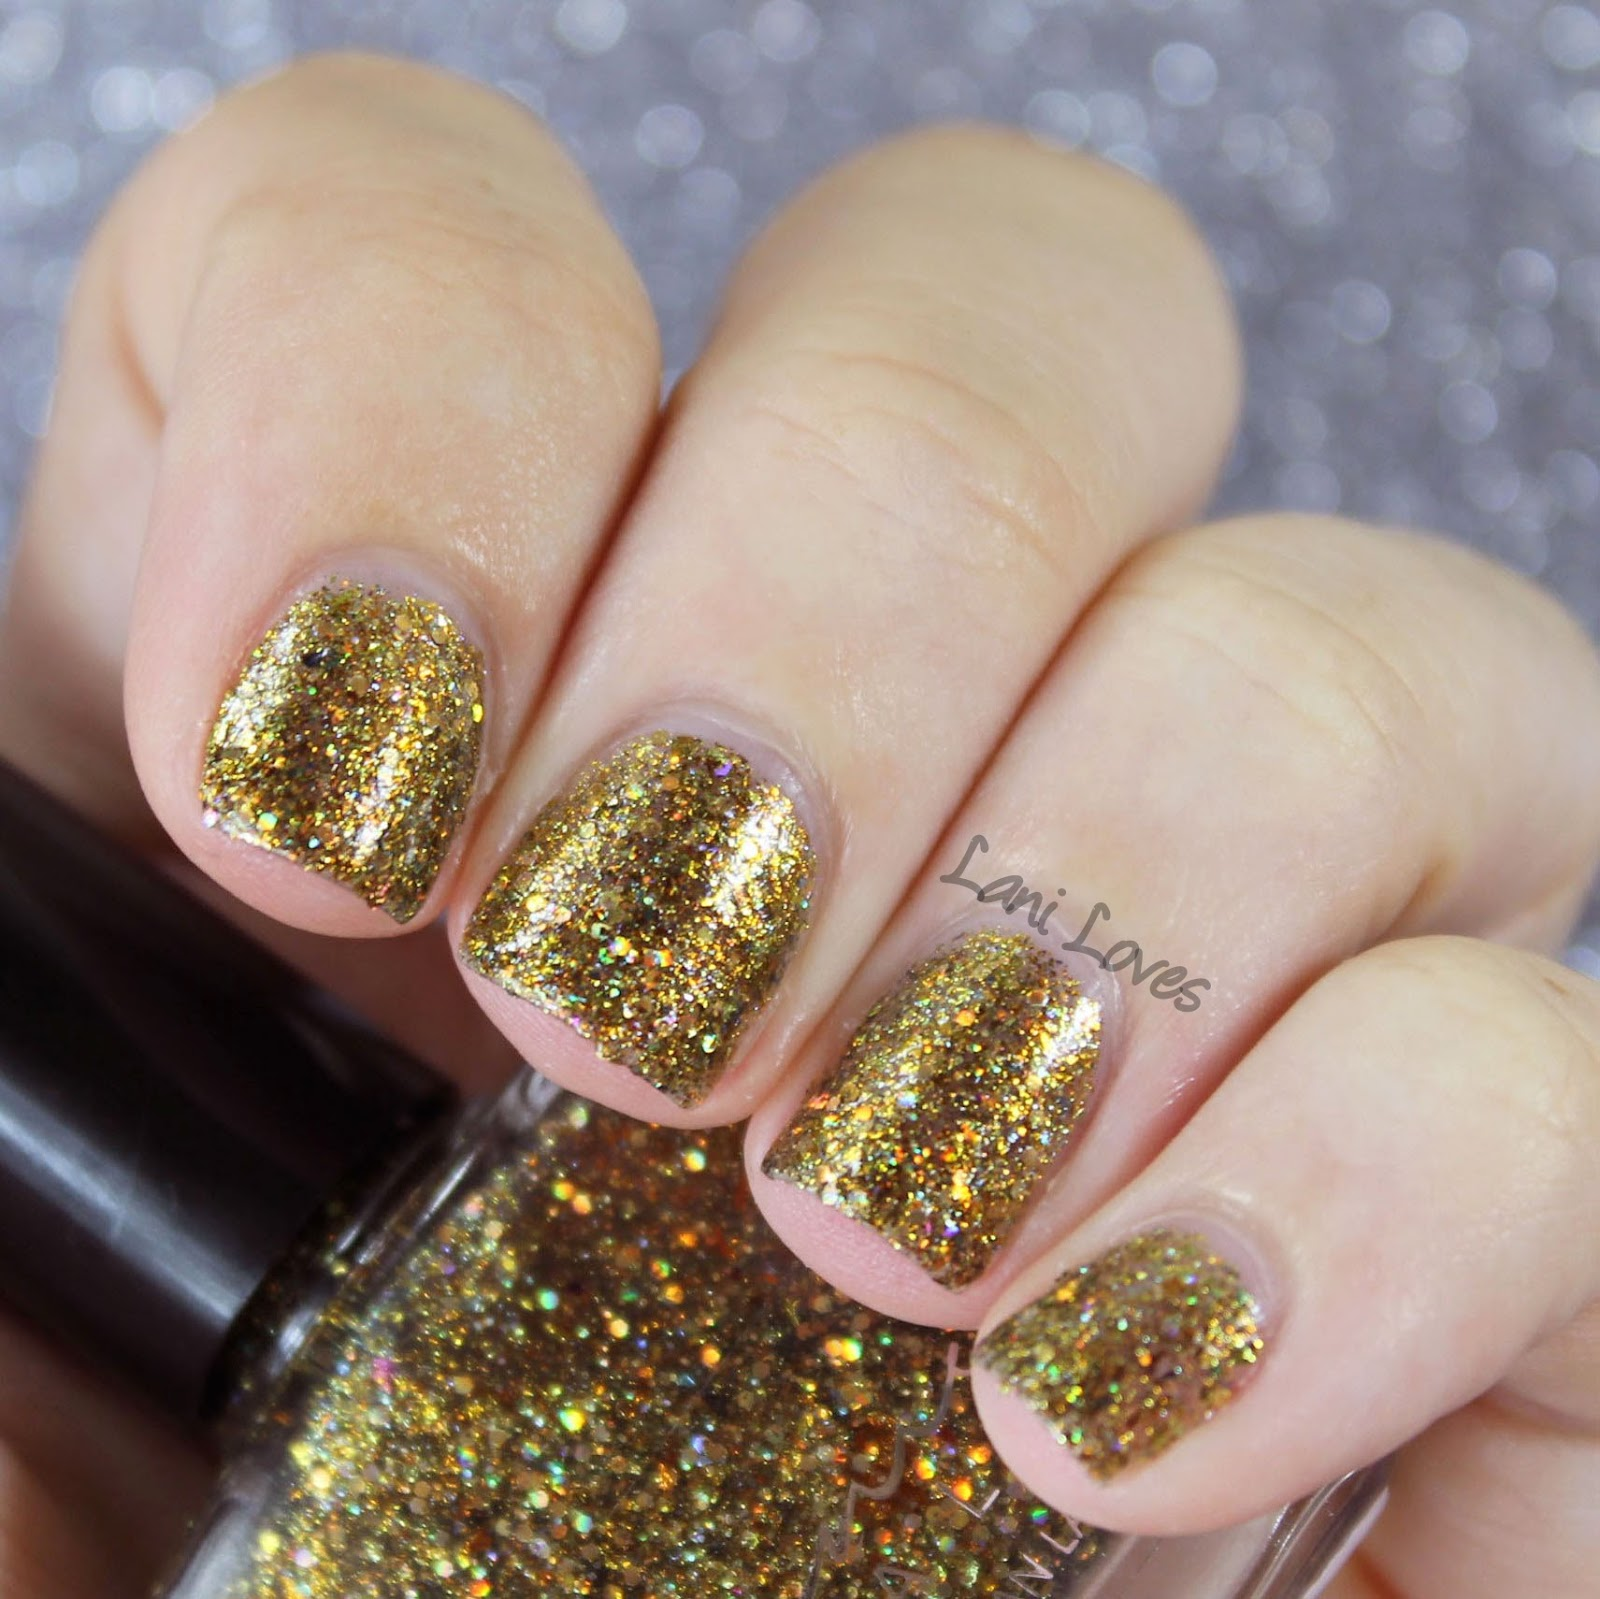 Femme Fatale Cosmetics - Fool's Paradise nail polish swatch